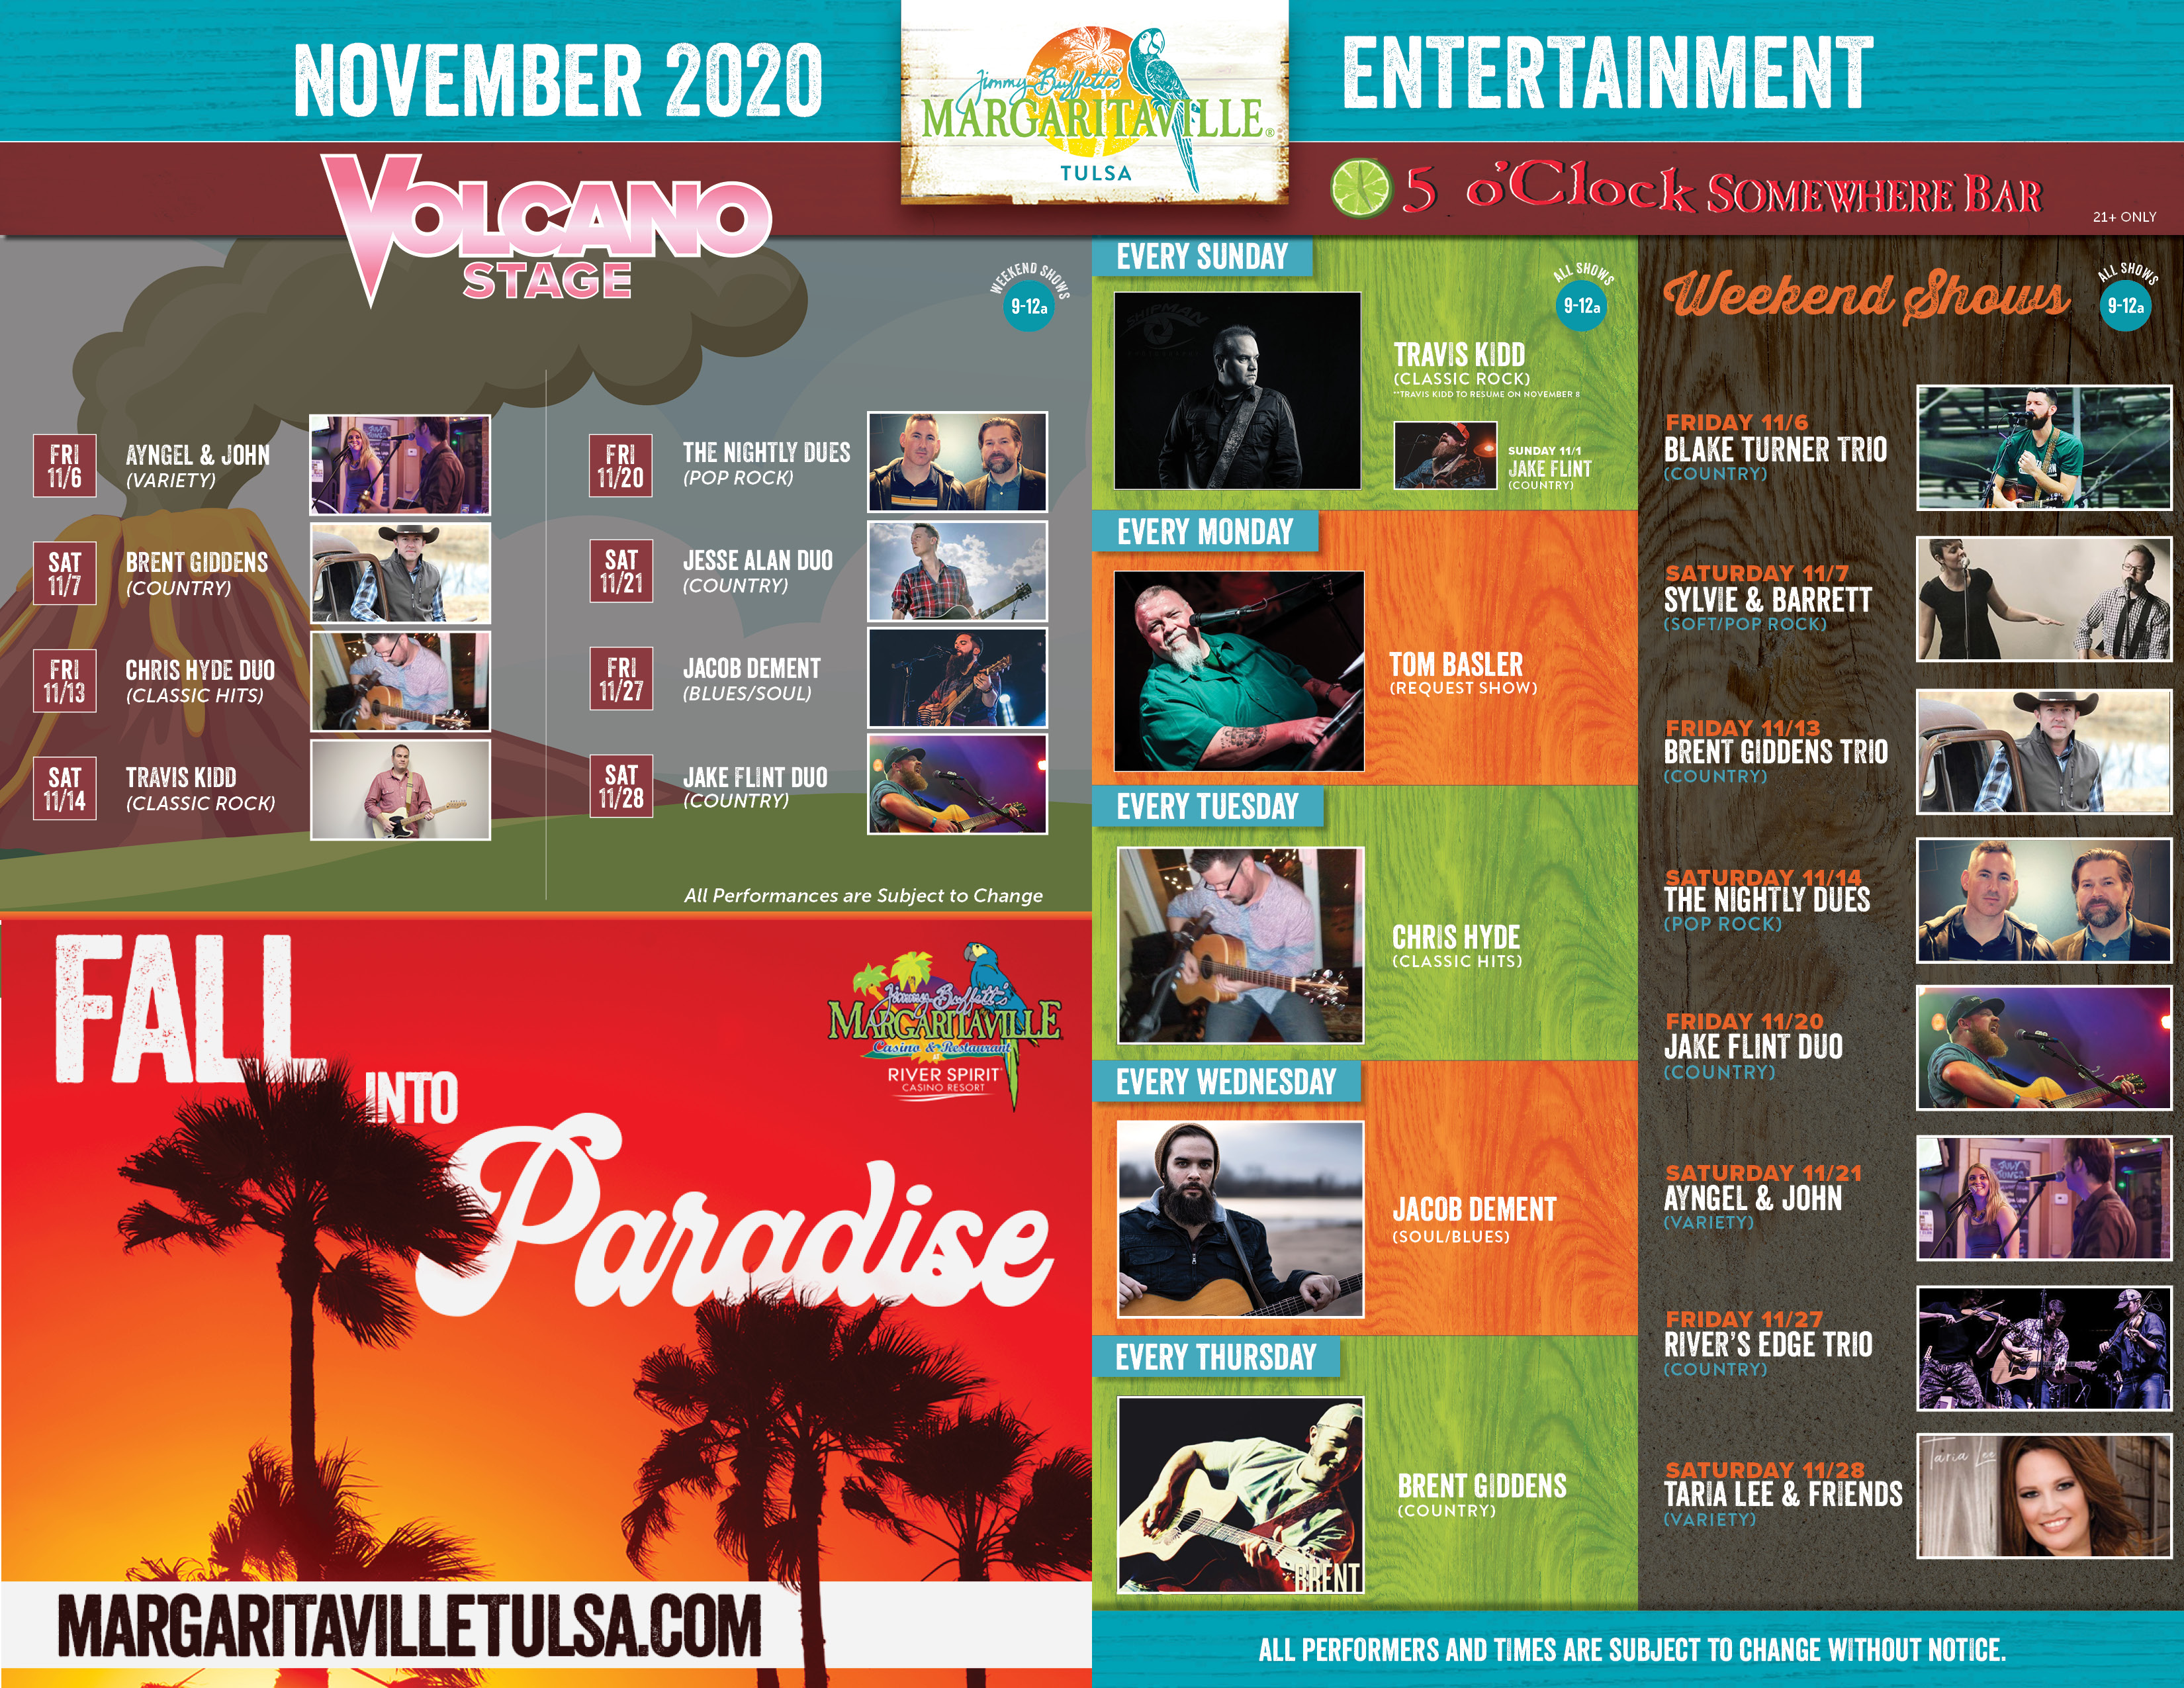 Margaritaville Tulsa November 2020 Calendar of Events. Visually impaired customers please call for assistance or read next tab